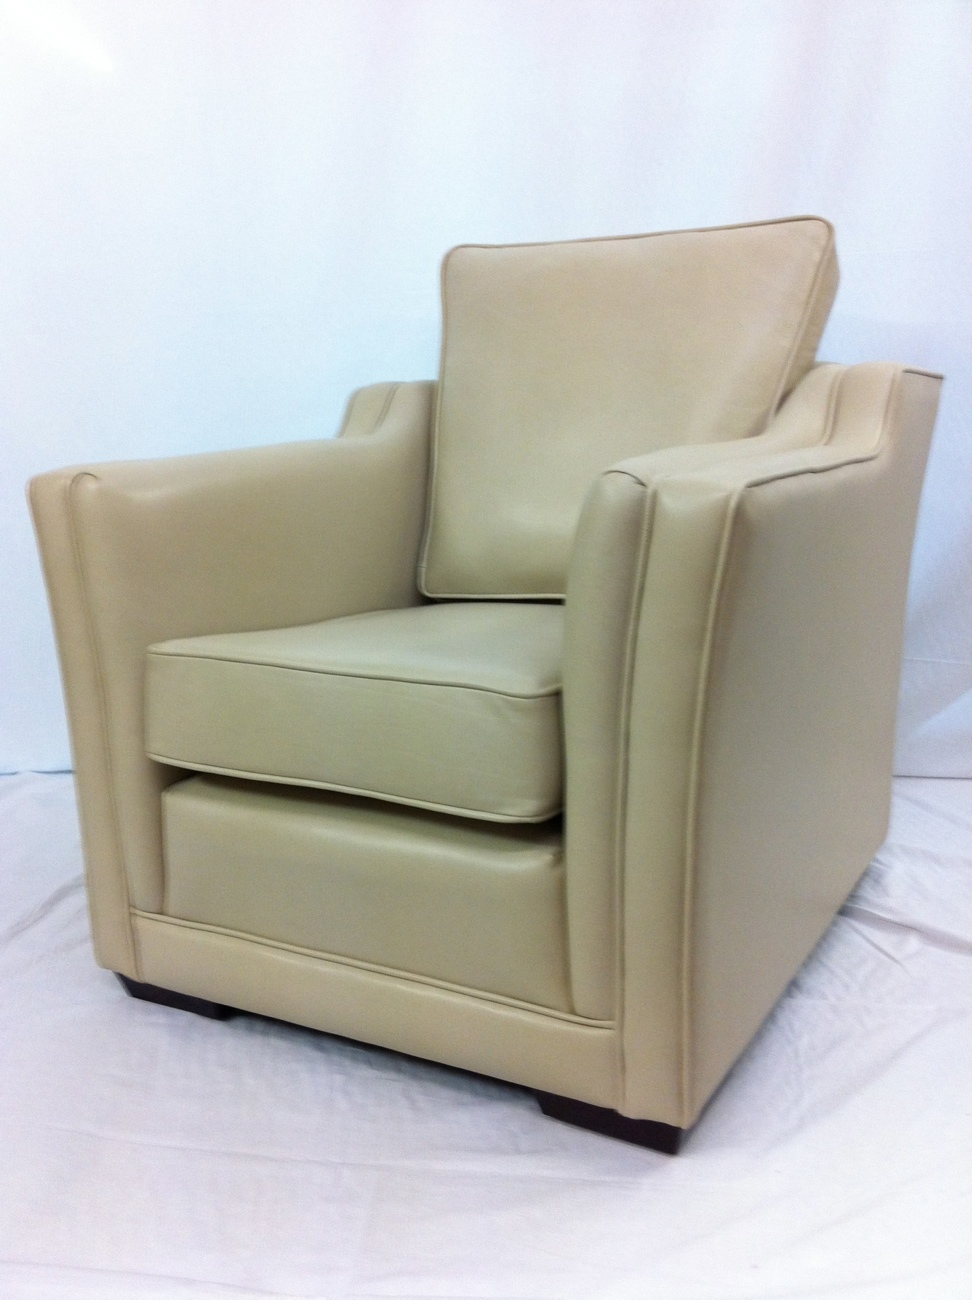 Trafalgar Leather Arm Chair made by Ralvern Sofas & Chairs Cannock based Master Upholsterers